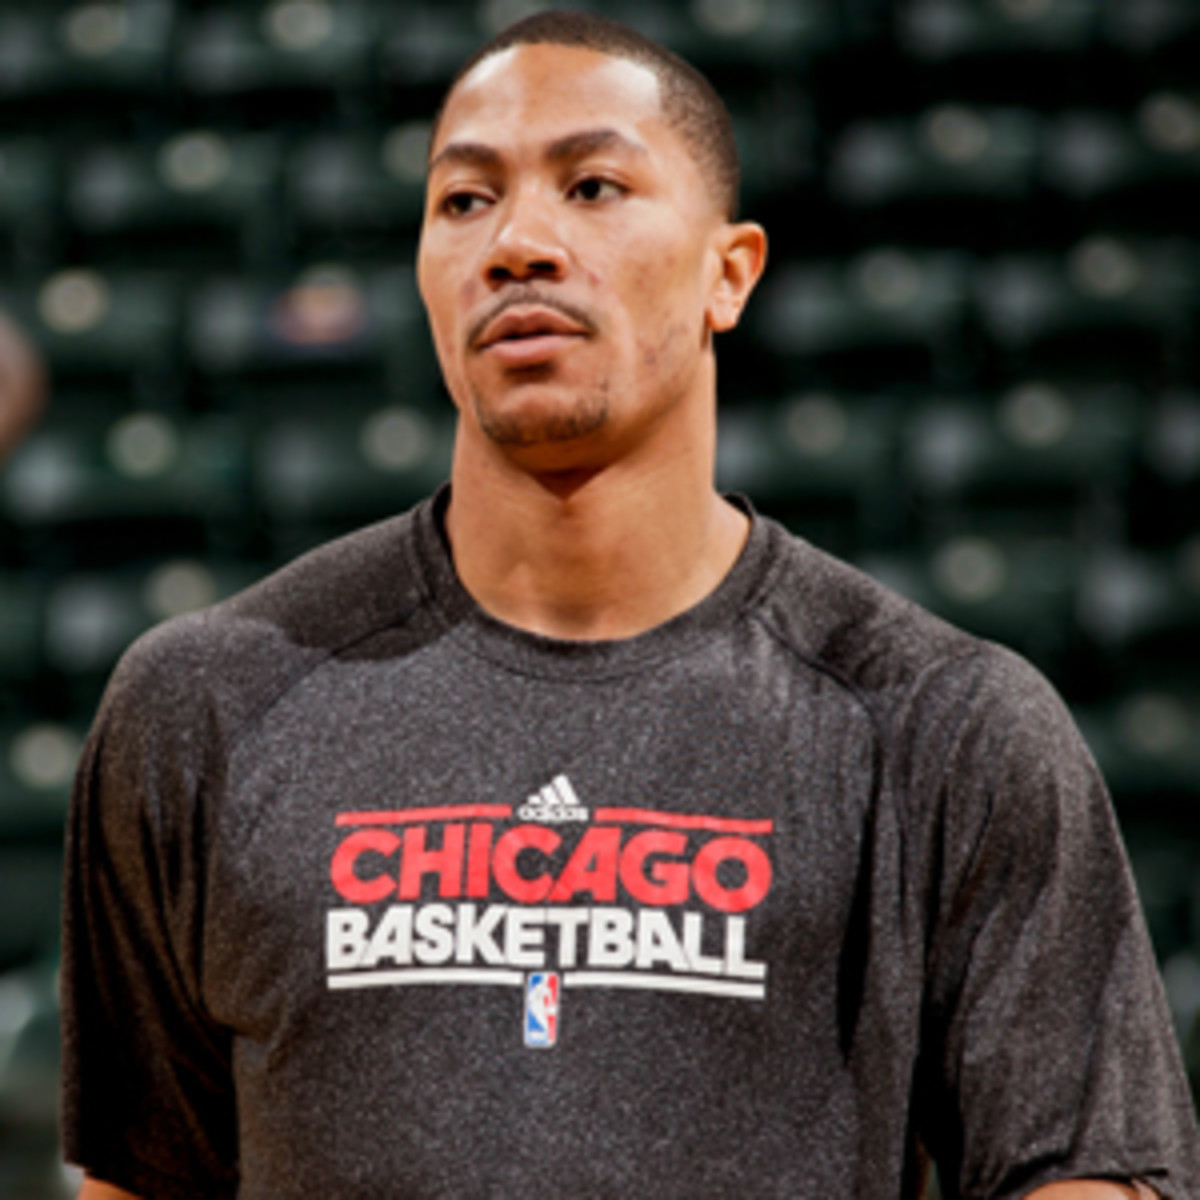 Derrick Rose has been sidelined since tearing an ACL in last season's playoffs. (Ron Hoskins/NBAE via Getty Images)